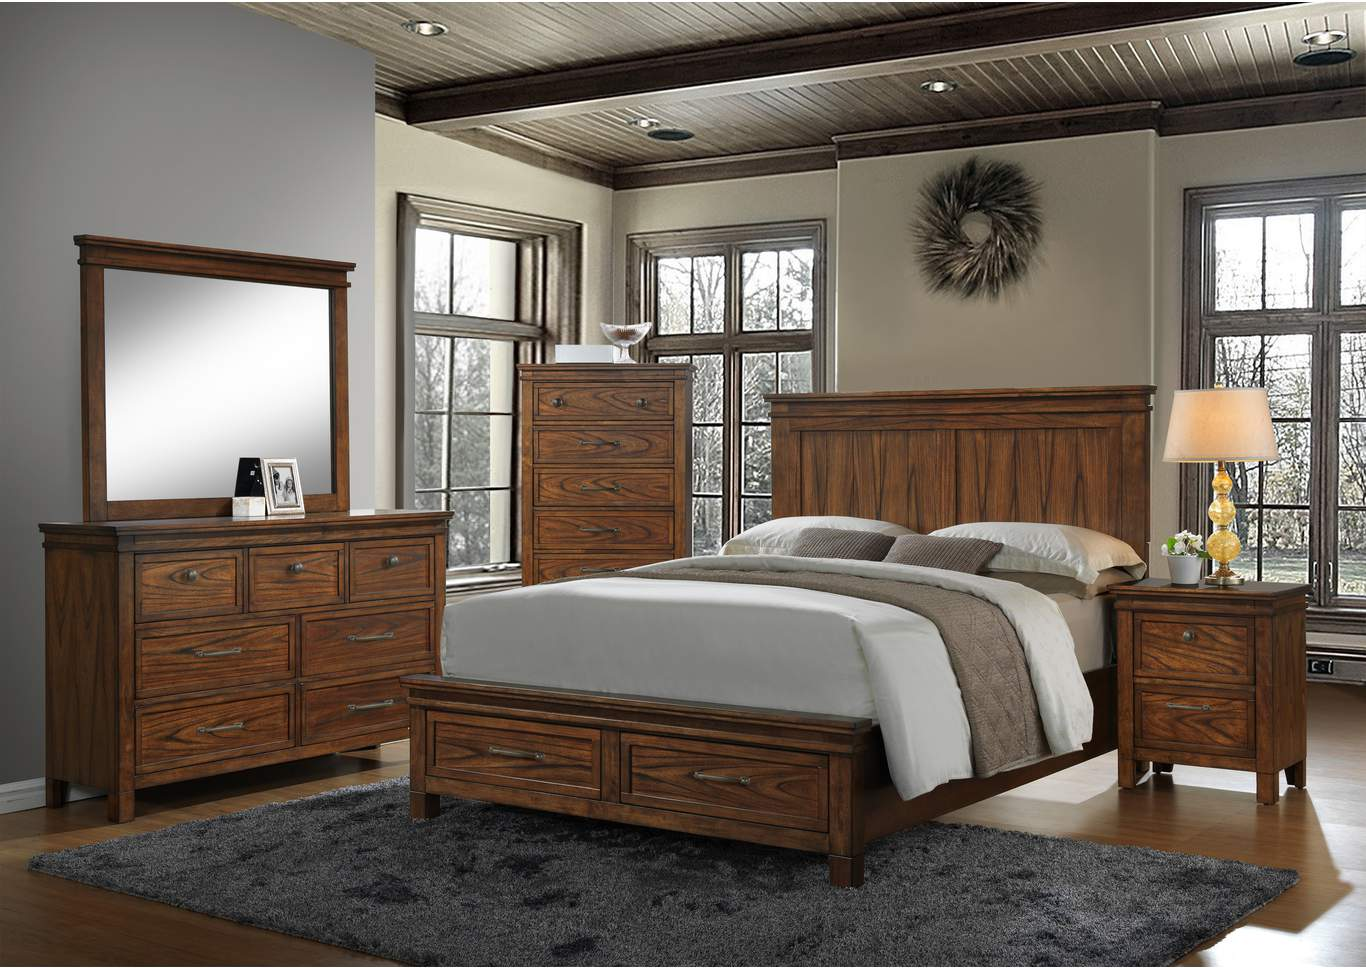 Cassidy Storage/Panel Queen Bed w/Dresser, Mirror, Nightstand and Drawer Chest,Crown Mark